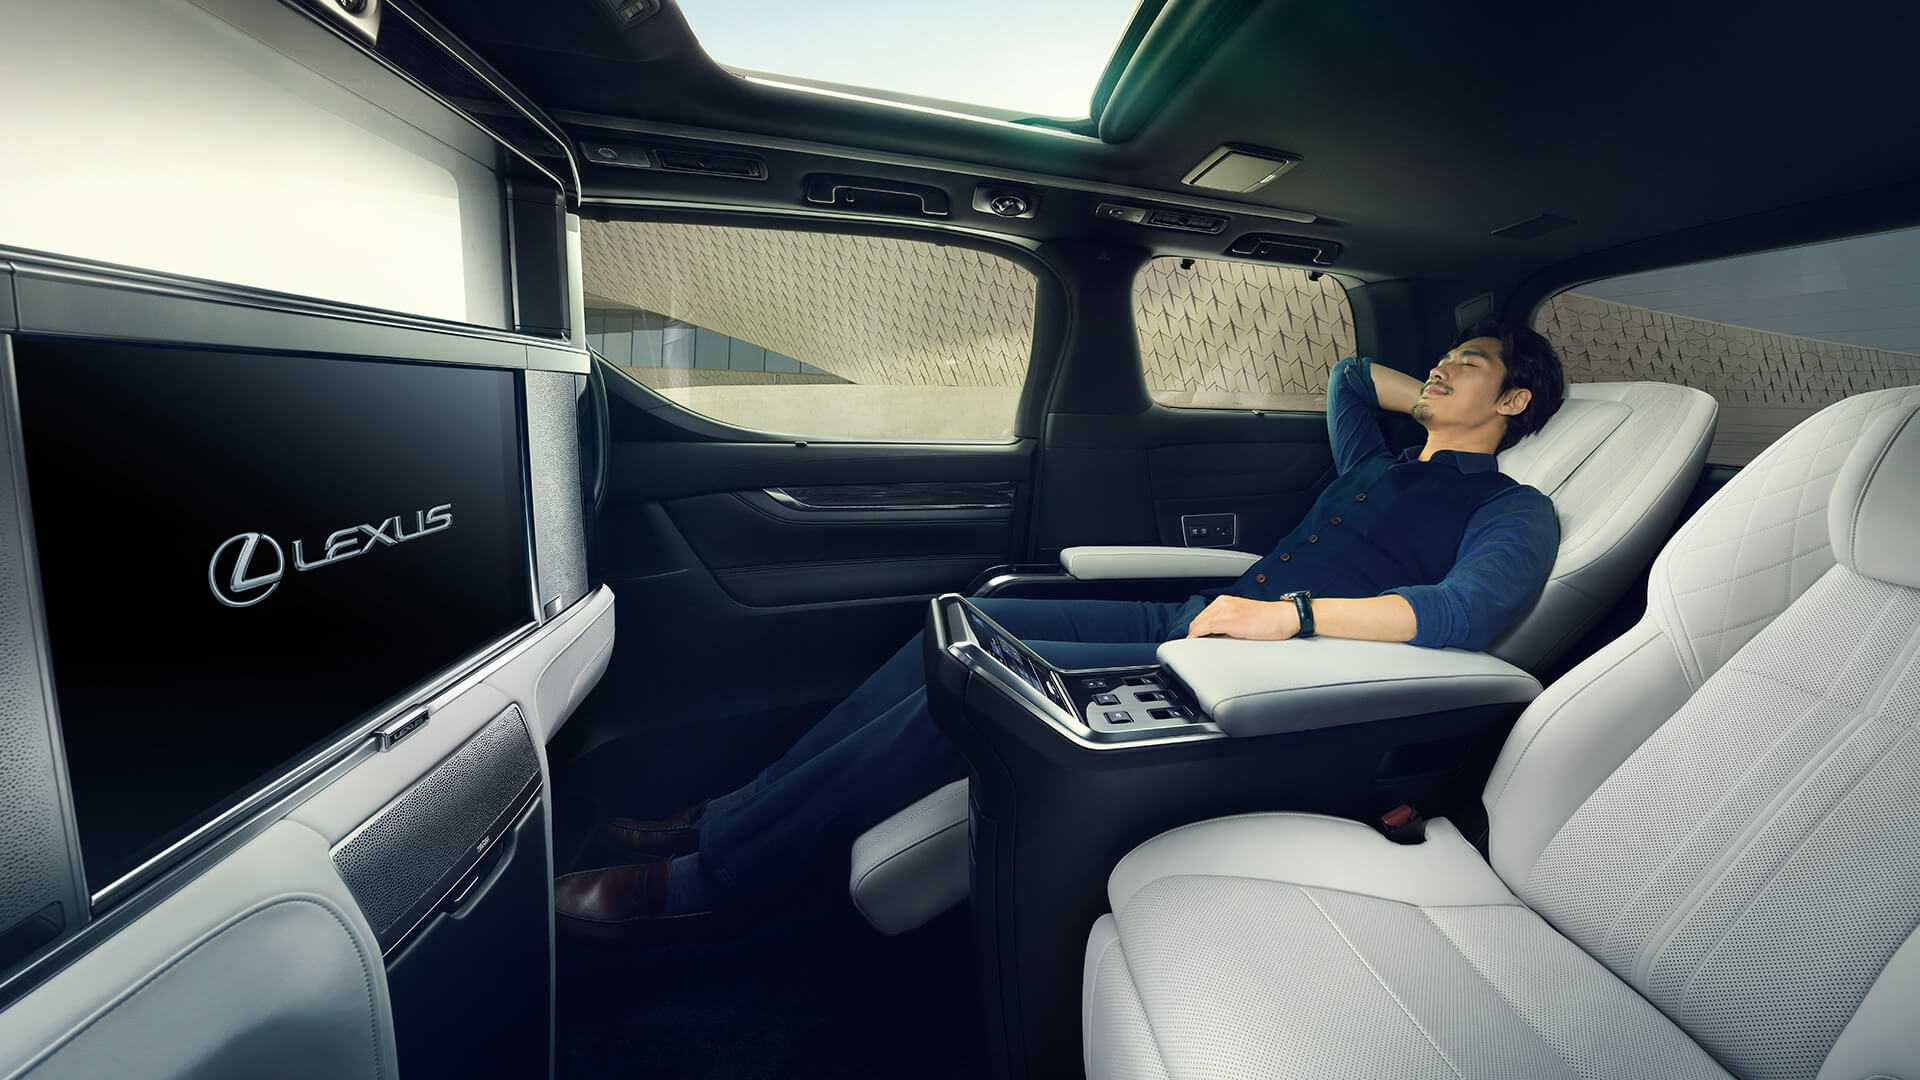 Lexus Lm 300h Luxury Minivan Debuts Looks Amazing